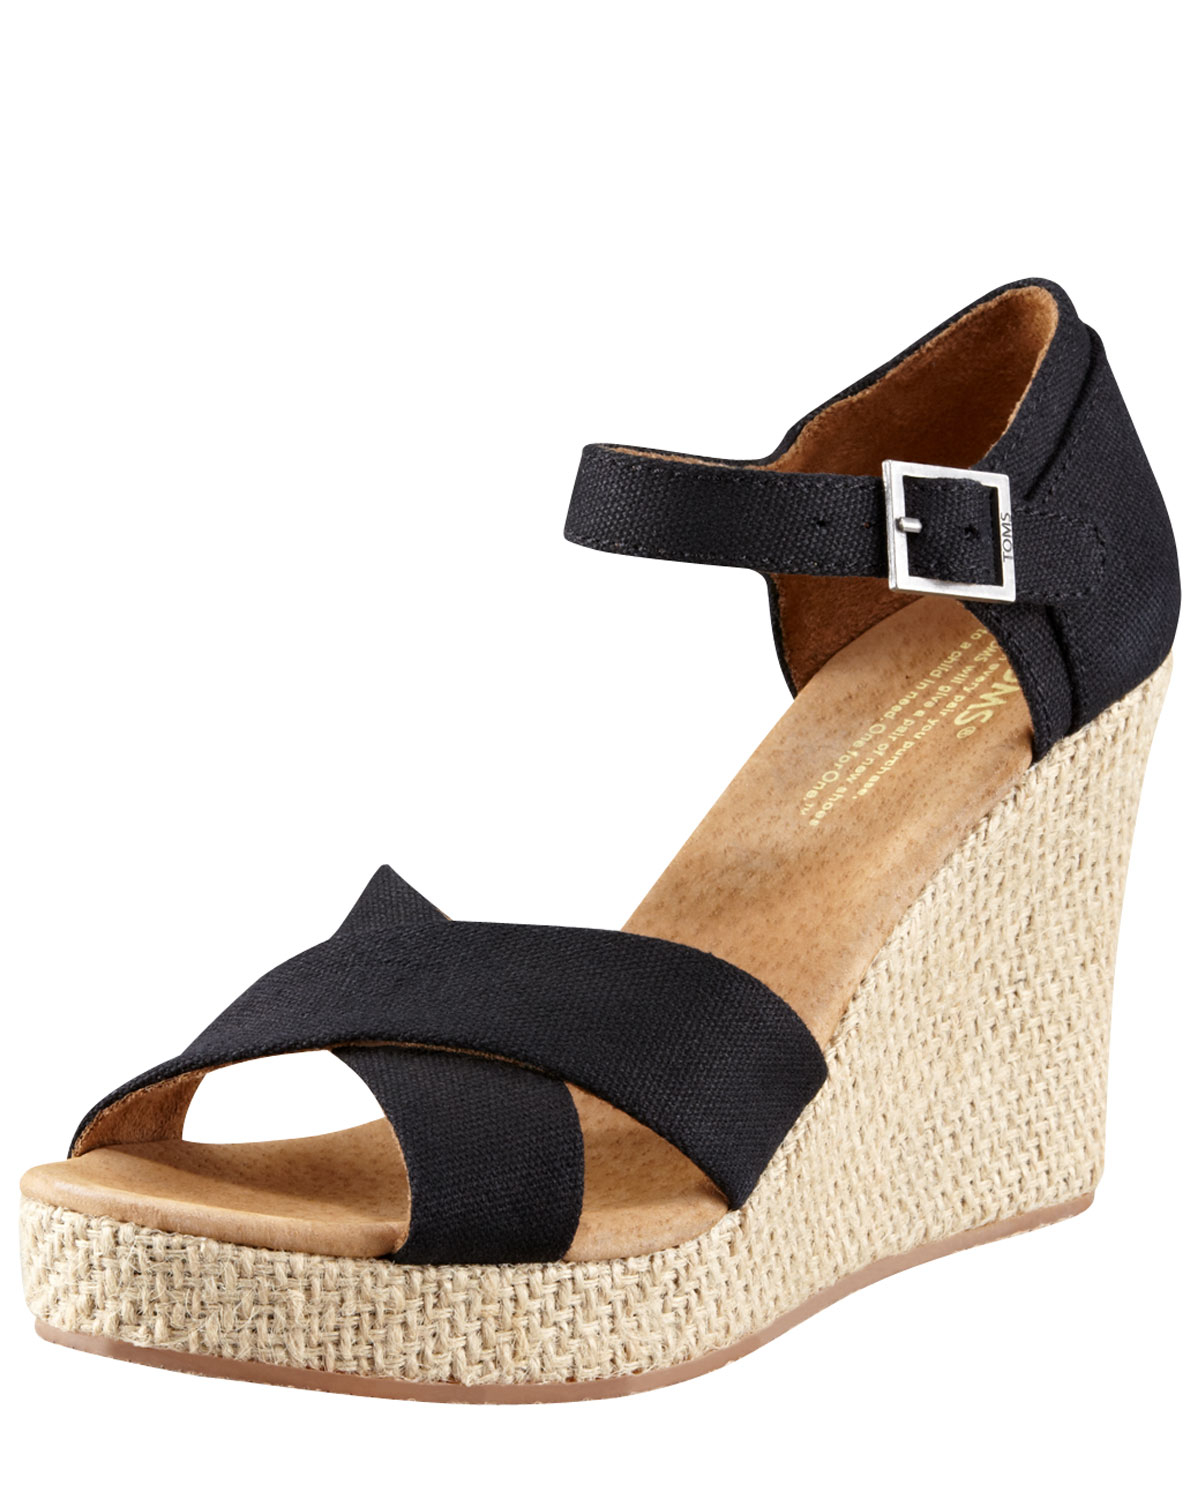 d6ee870c15e4 TOMS Canvas Wedge Sandal in Black - Lyst